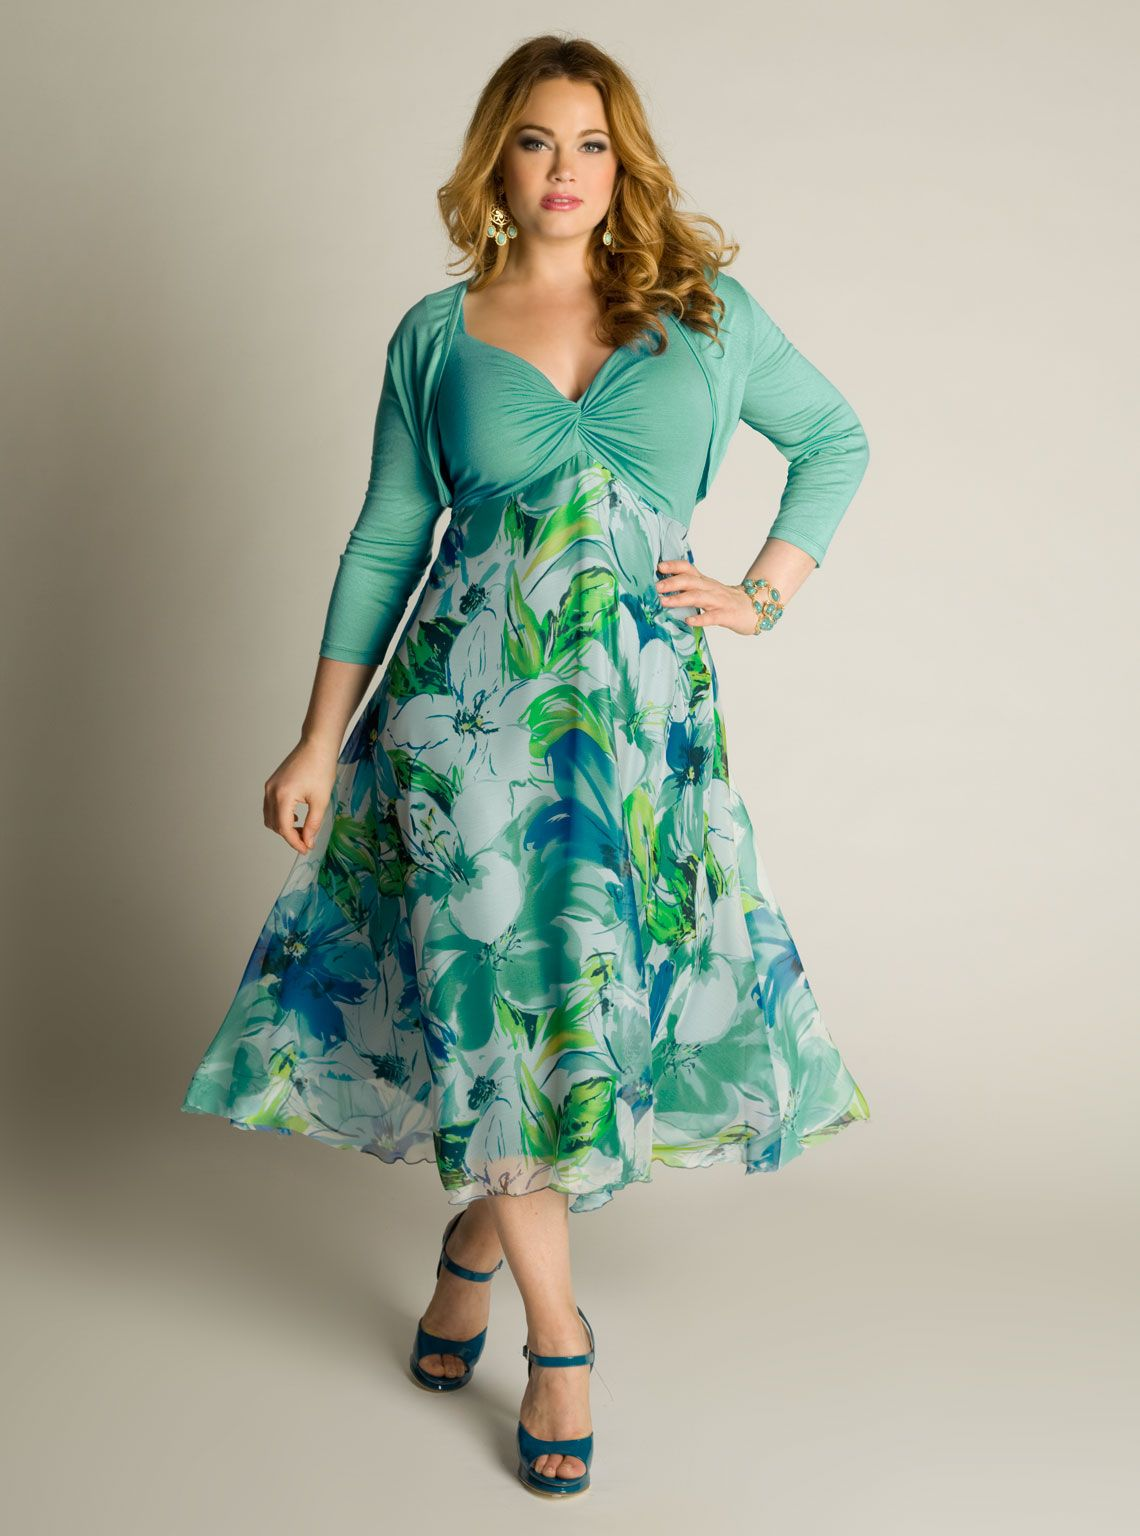 Sun dress for plus size women | Things to Wear | Pinterest | Woman ...